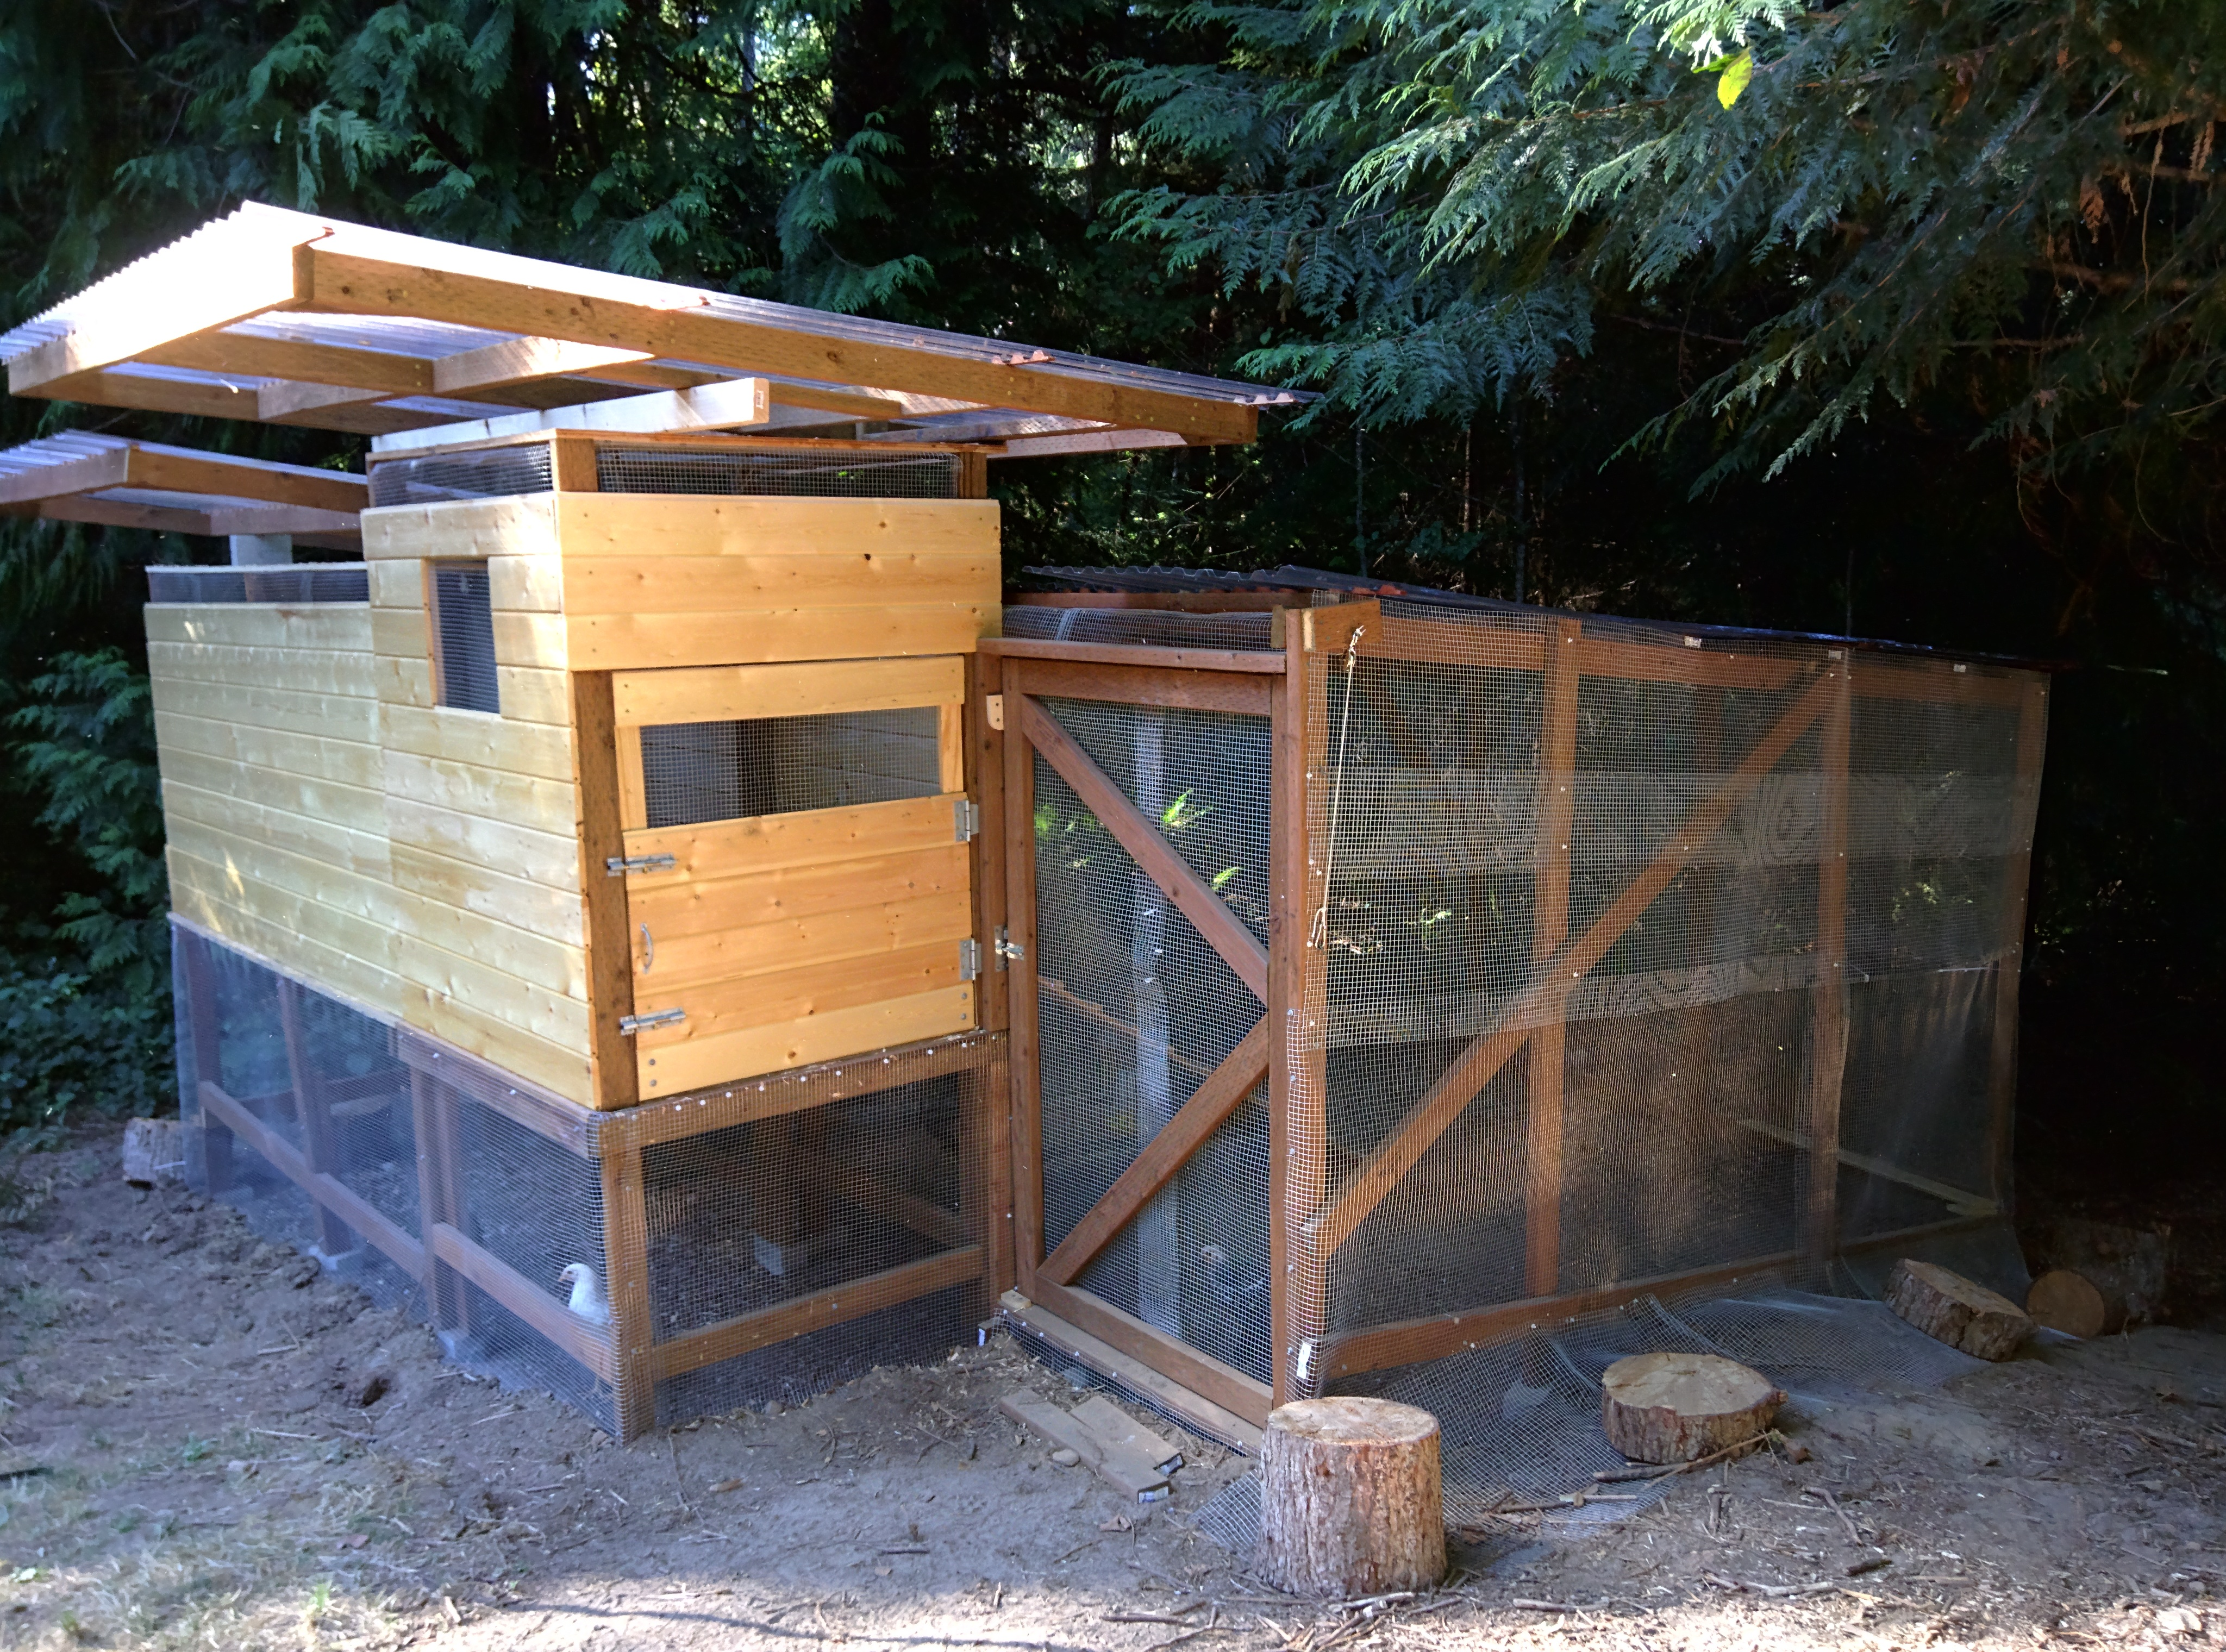 The final chicken coop without a nesting box